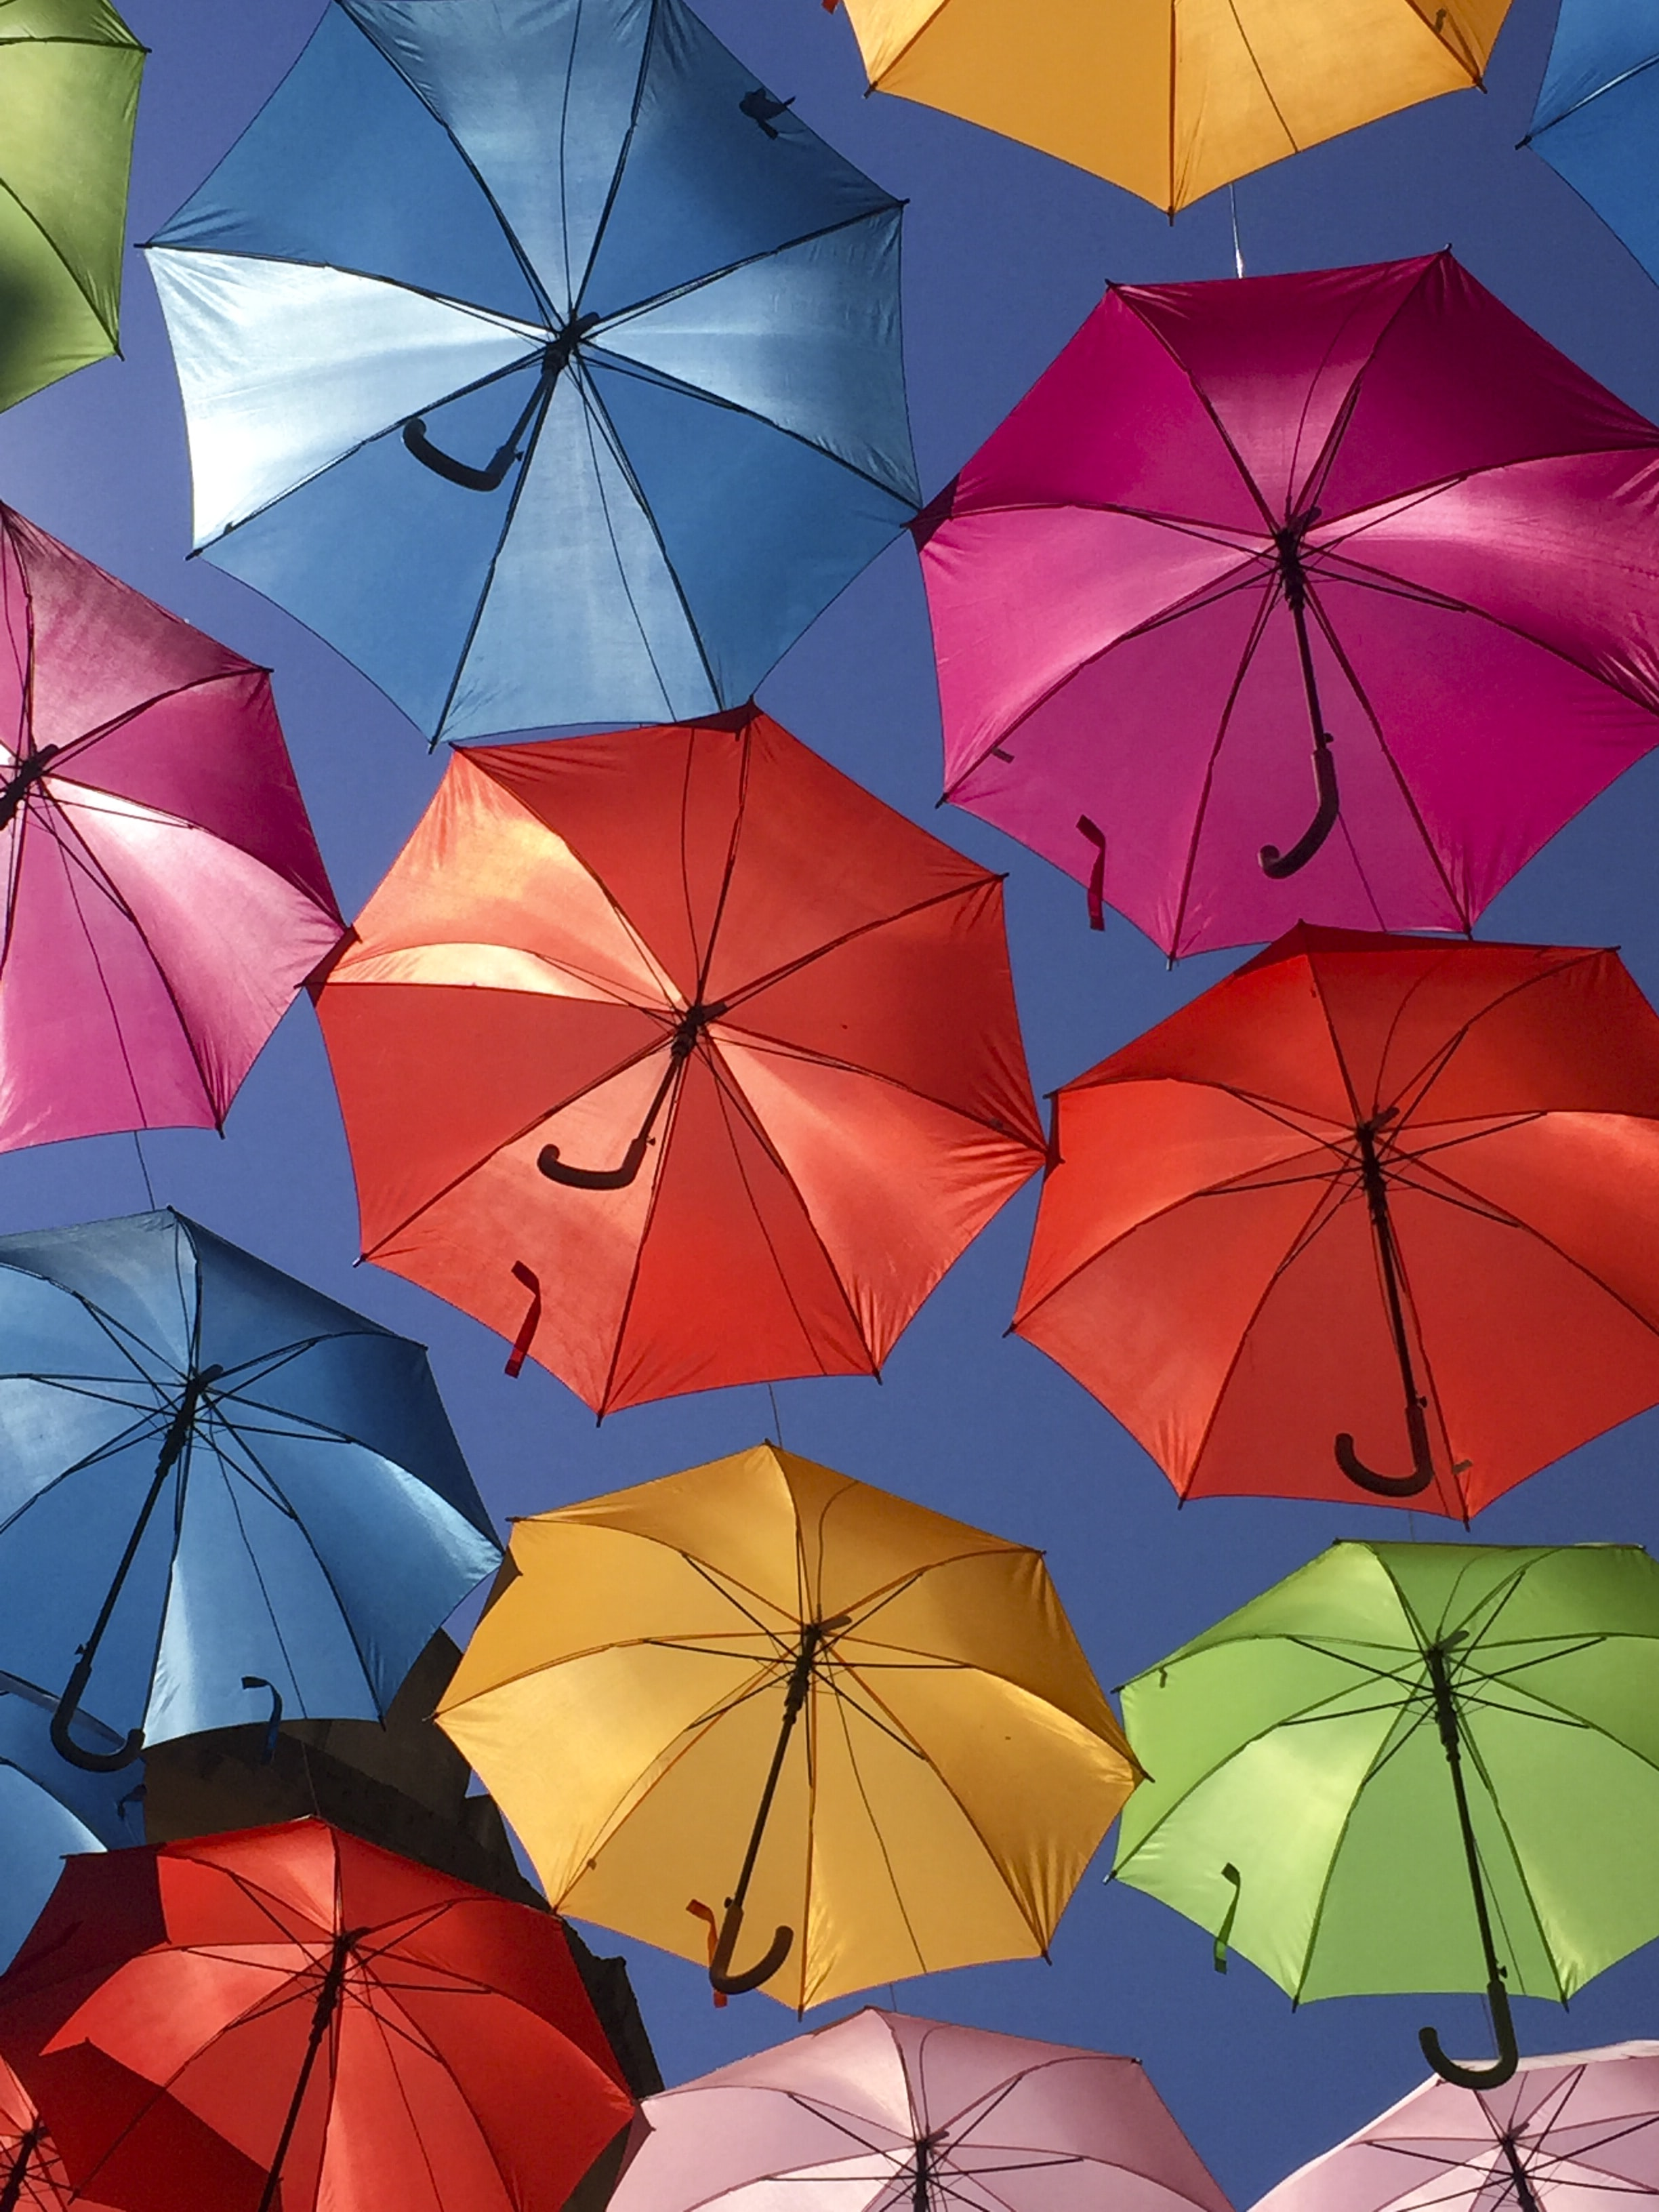 assorted-colored umbrella decor at daytime